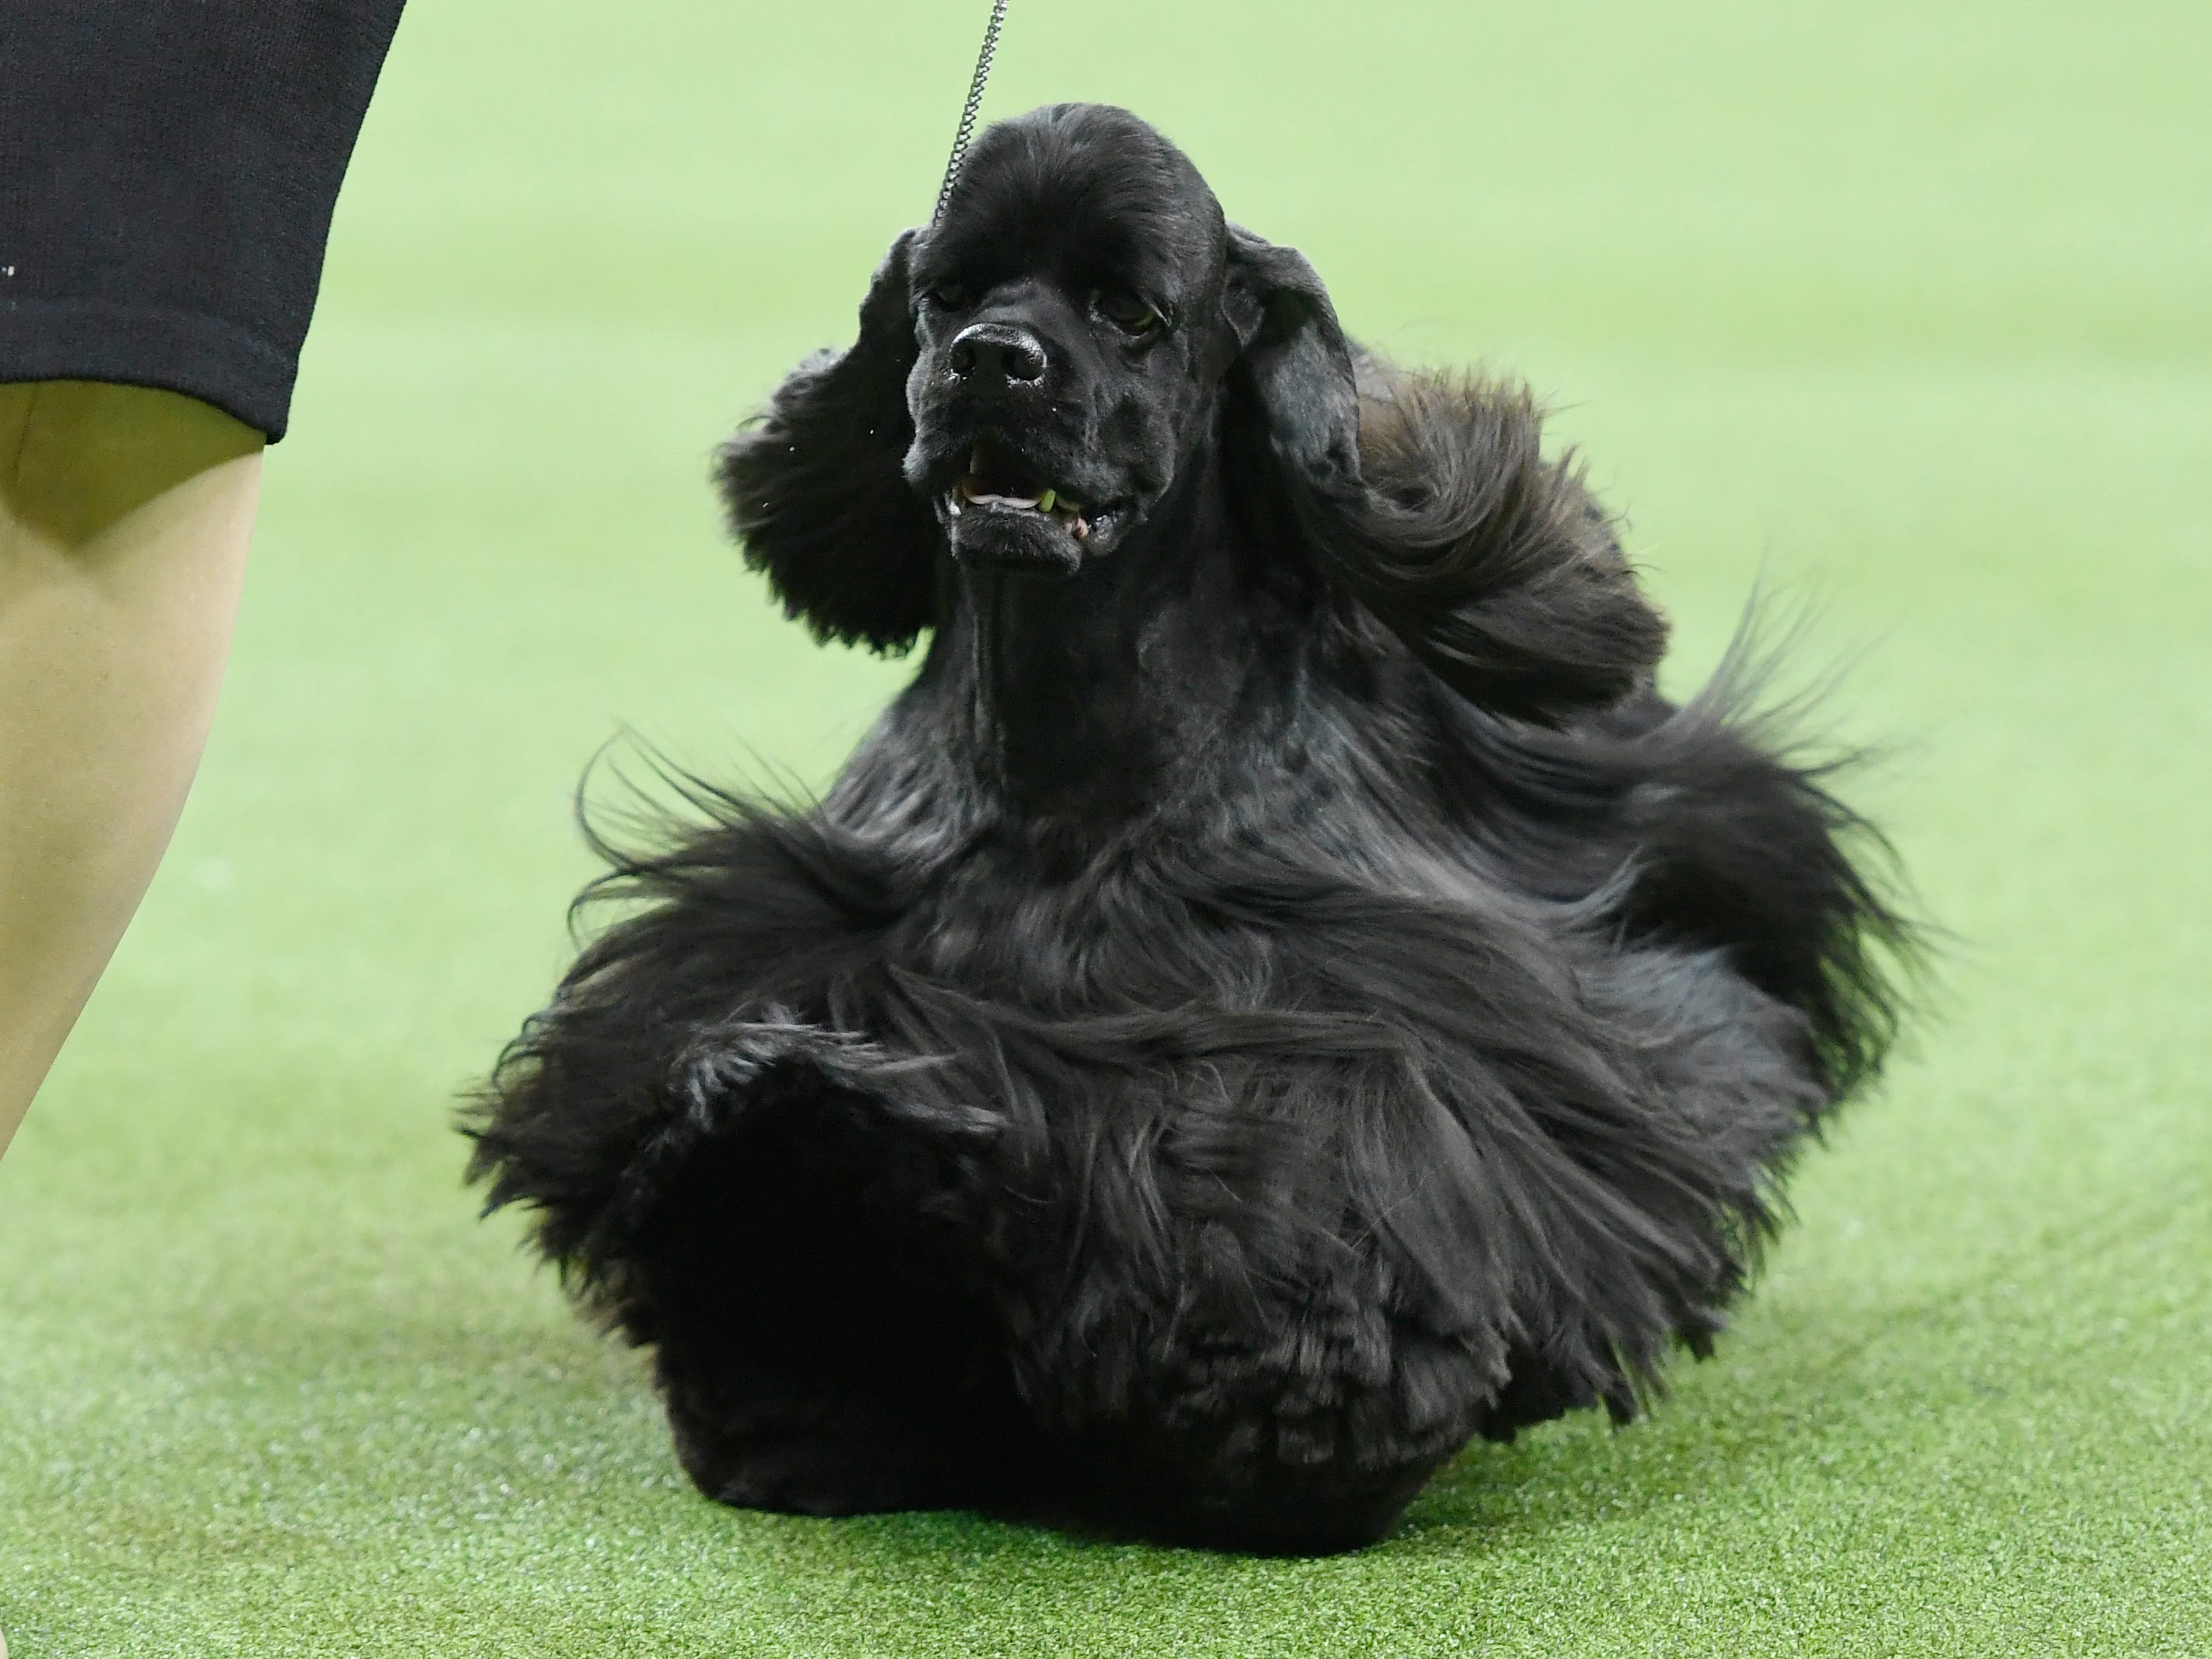 """The Black Cocker Spaniel  """"Grant"""" competes during Sporting Group judging at the 143rd Westminster Kennel Club Dog Show at Madison Square Garden."""